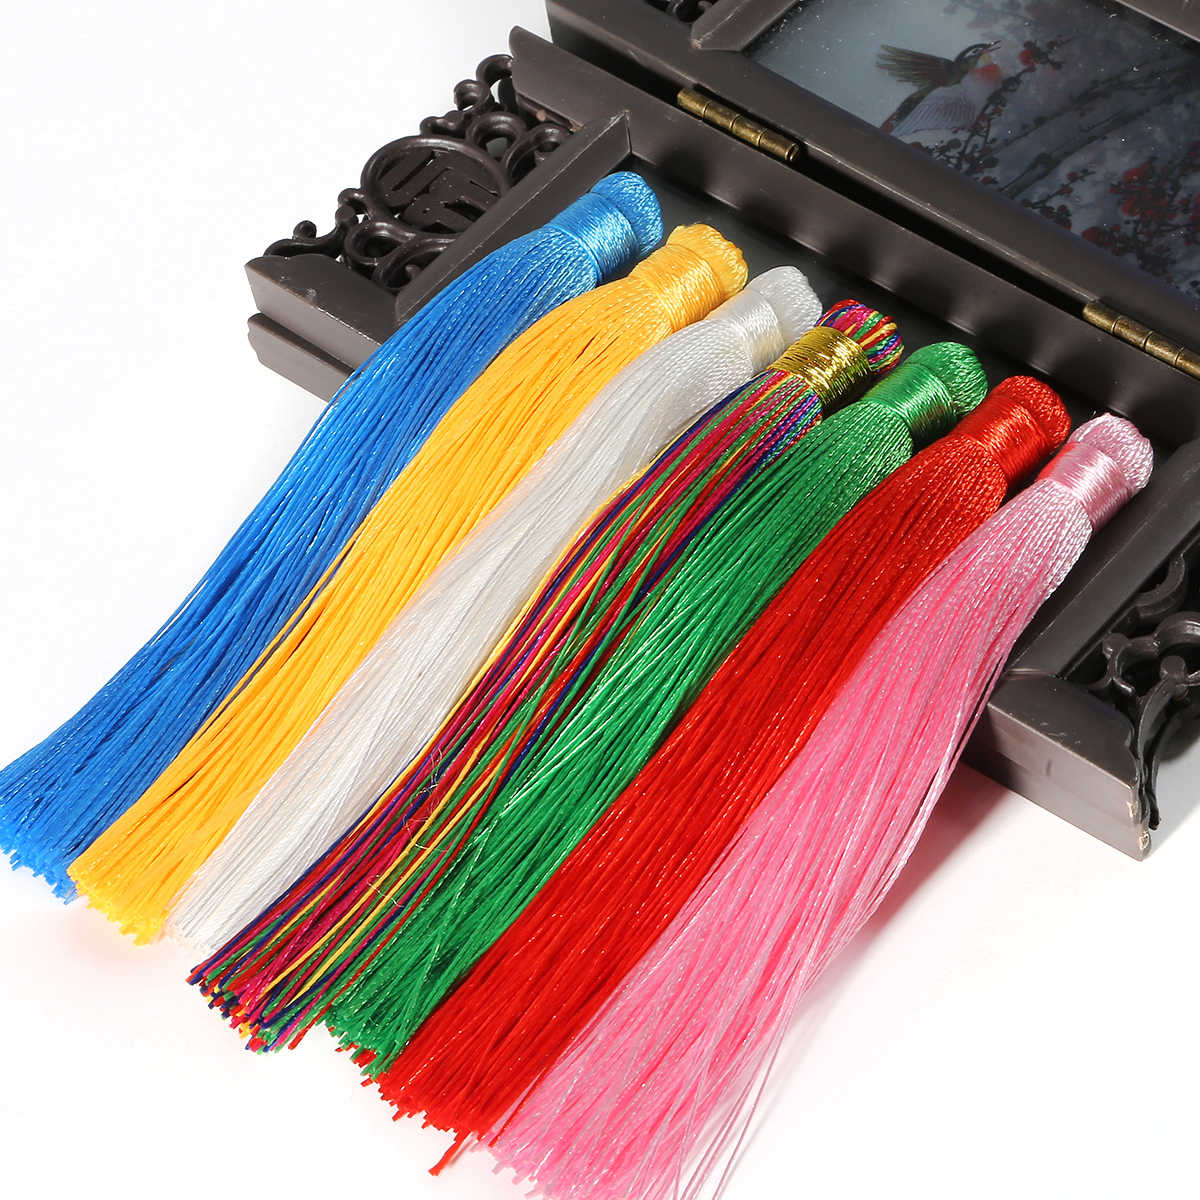 1pcs/lot 120mm Mixed Cotton Silk Tassels Earrings Charm Pendant Satin Tassels for DIY Jewelry Making Findings Materials